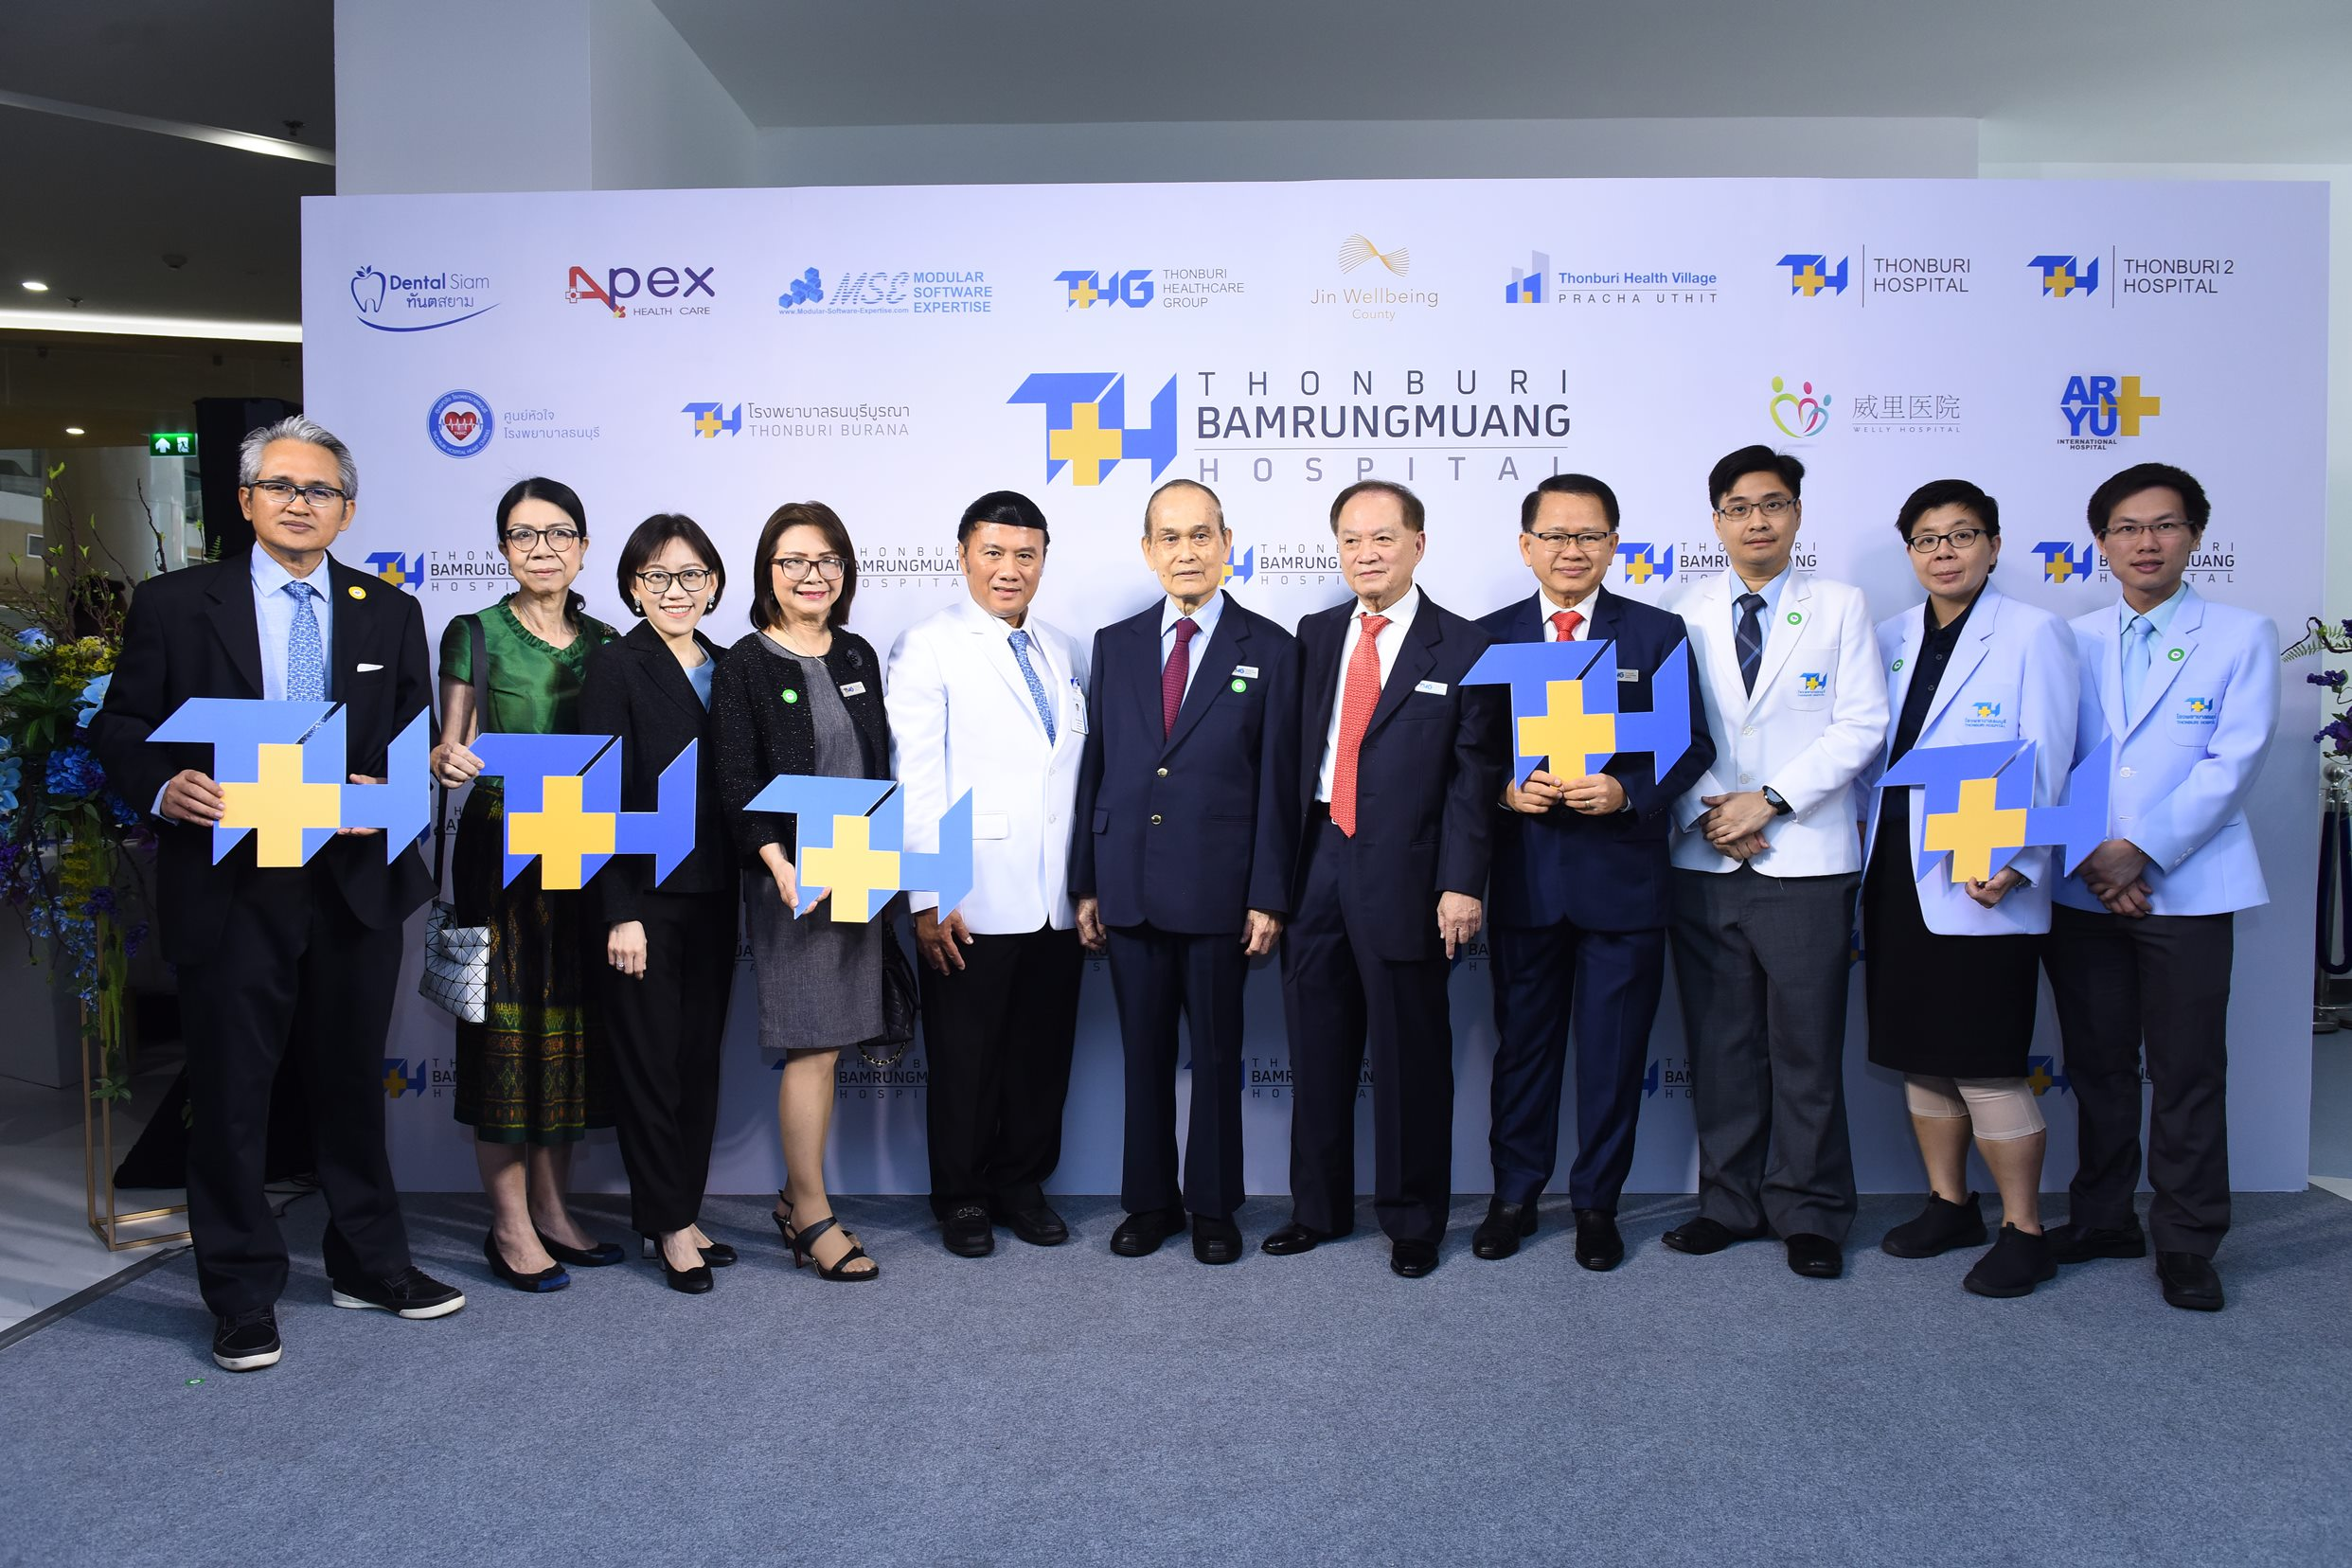 Mileage Group drives publicity for Thonburi Healthcare Group's Medical Centre in Bangkok throughout Asia